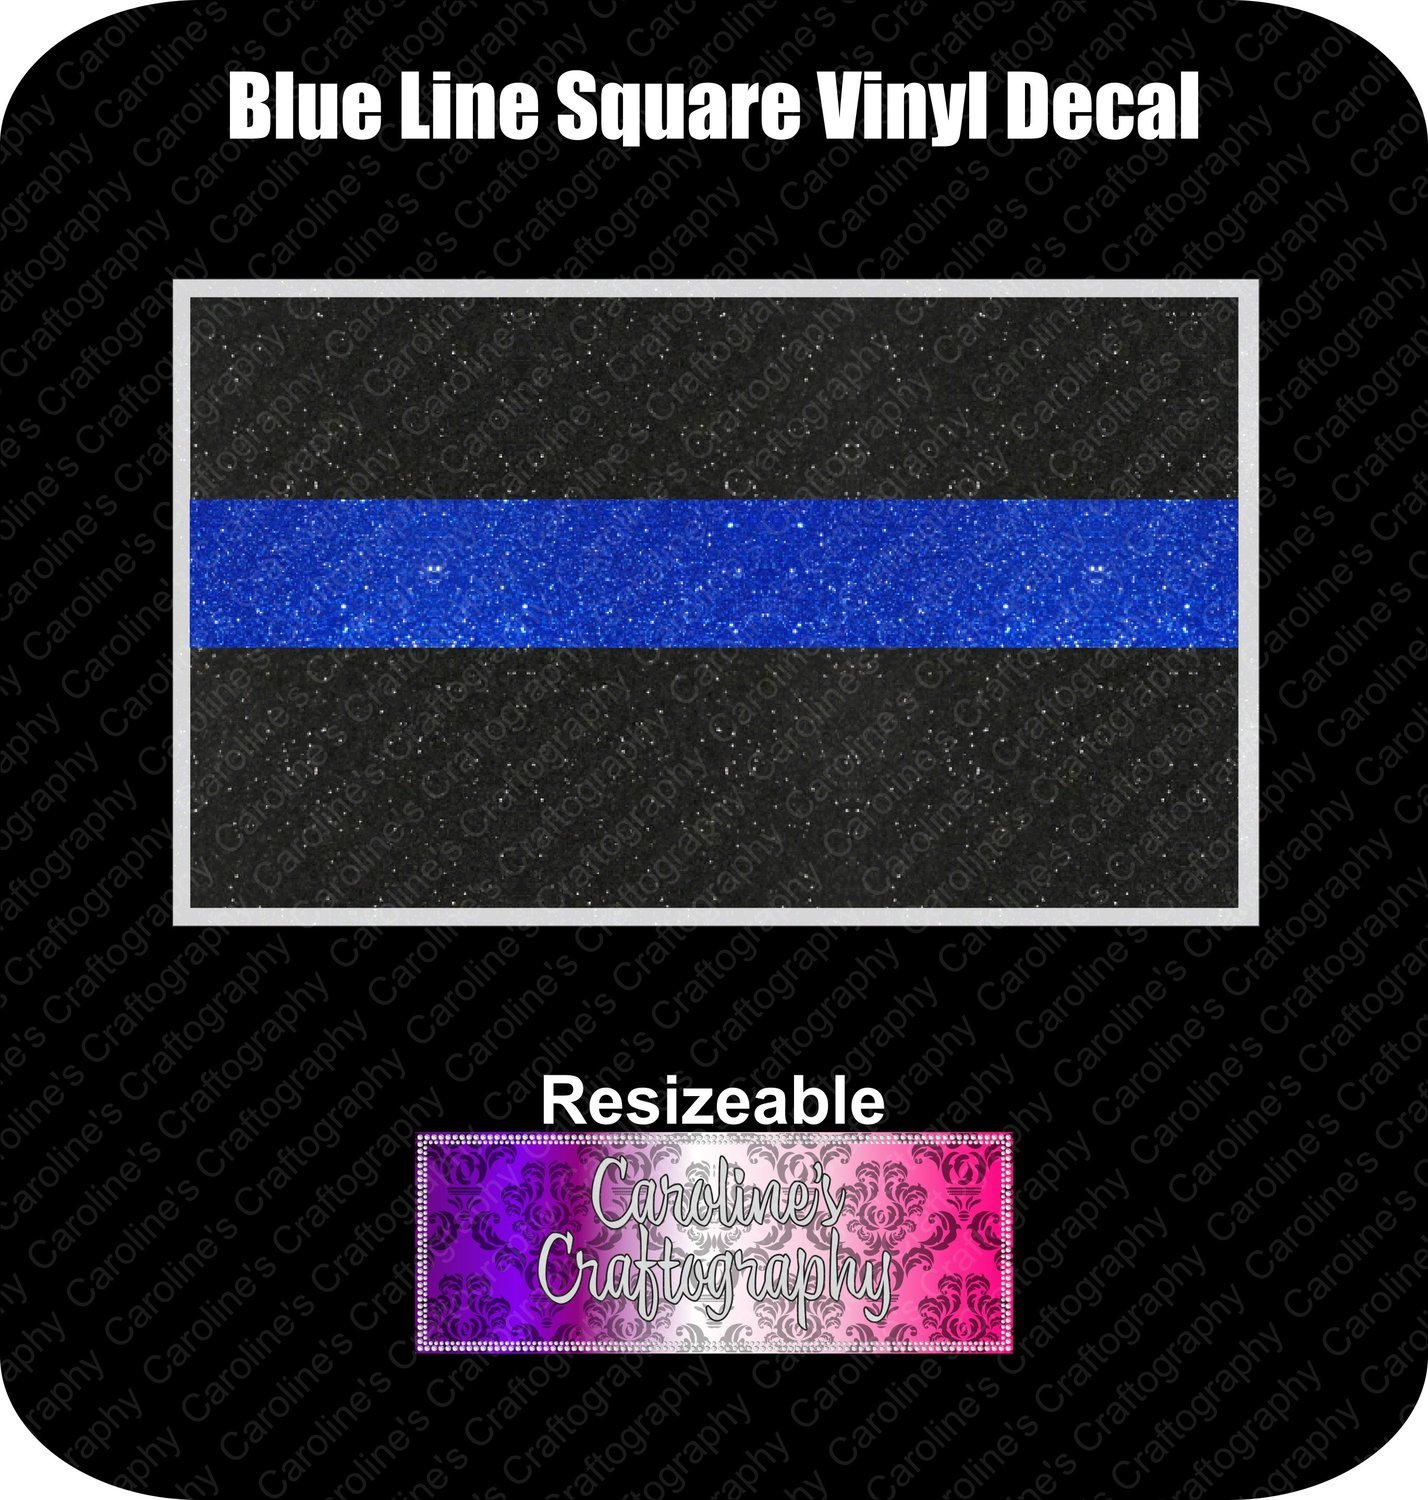 Blue Line Square Vinyl Decal